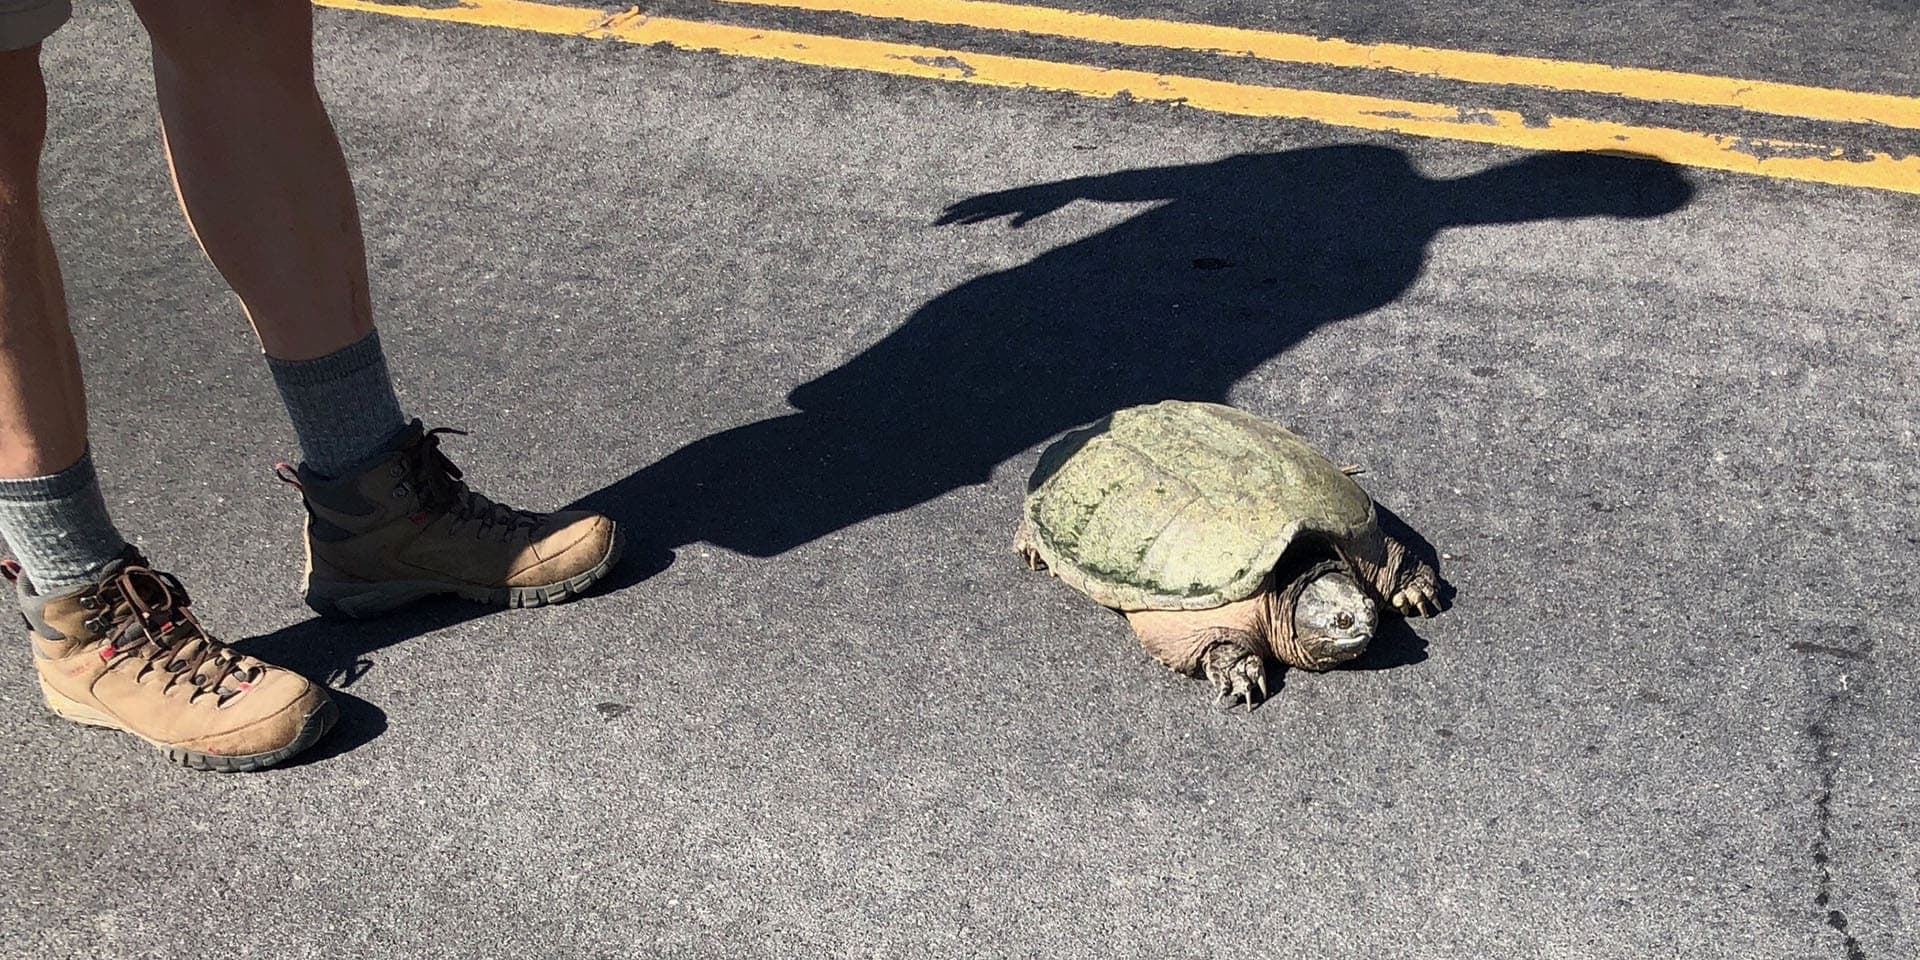 Snapping-Turtle-on-the-Road